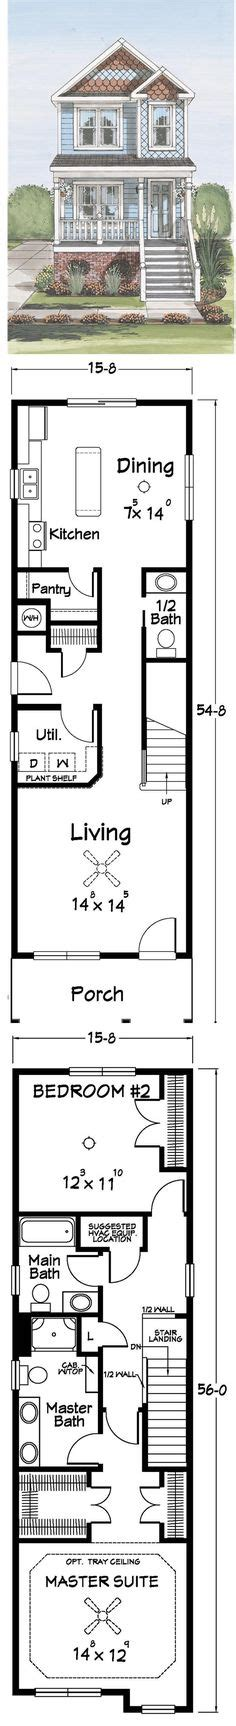 two story house plans for narrow lots decorative gable gp200 with finial decorative gable trim pinterest exterior and